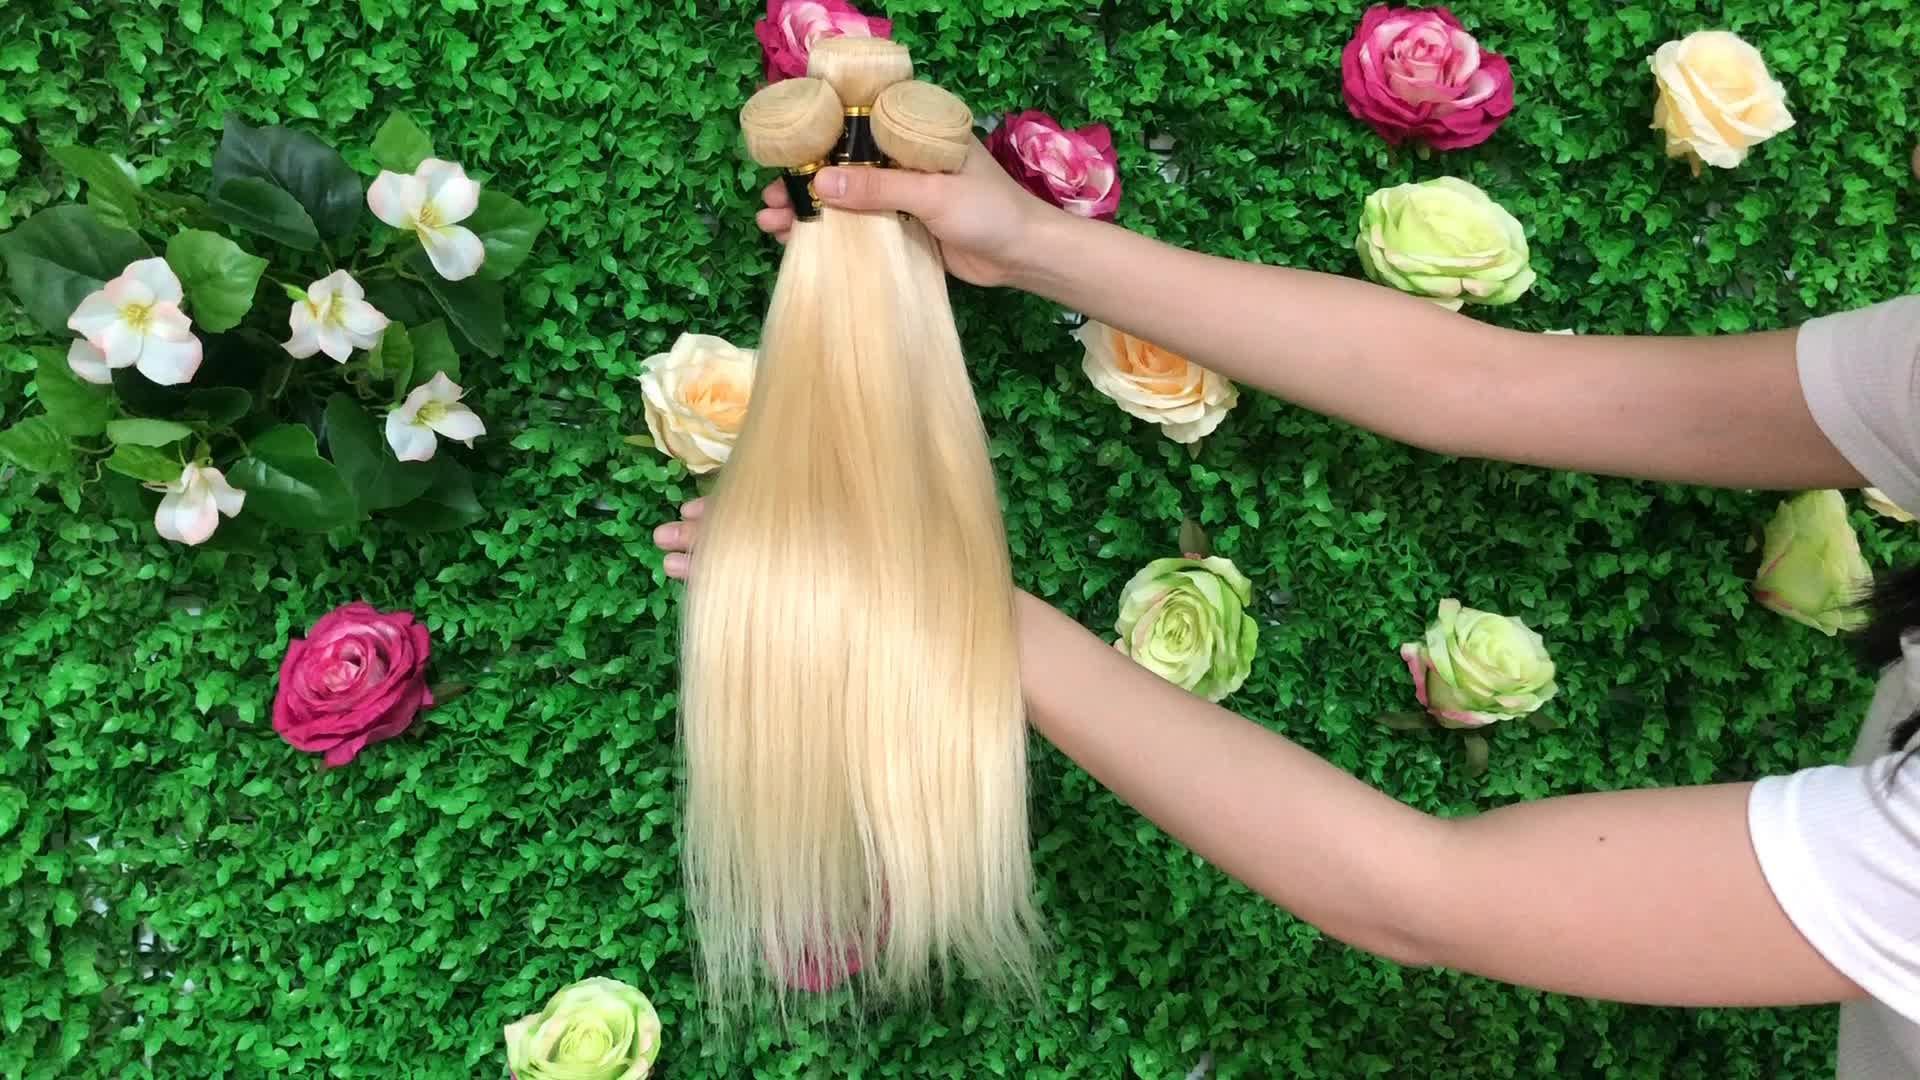 Cheap European Blonde 613 Virgin Hair, High Quality Raw 613 Blonde Virgin Hair Bundles, Platinum 613 Russian Blonde Virgin Hair